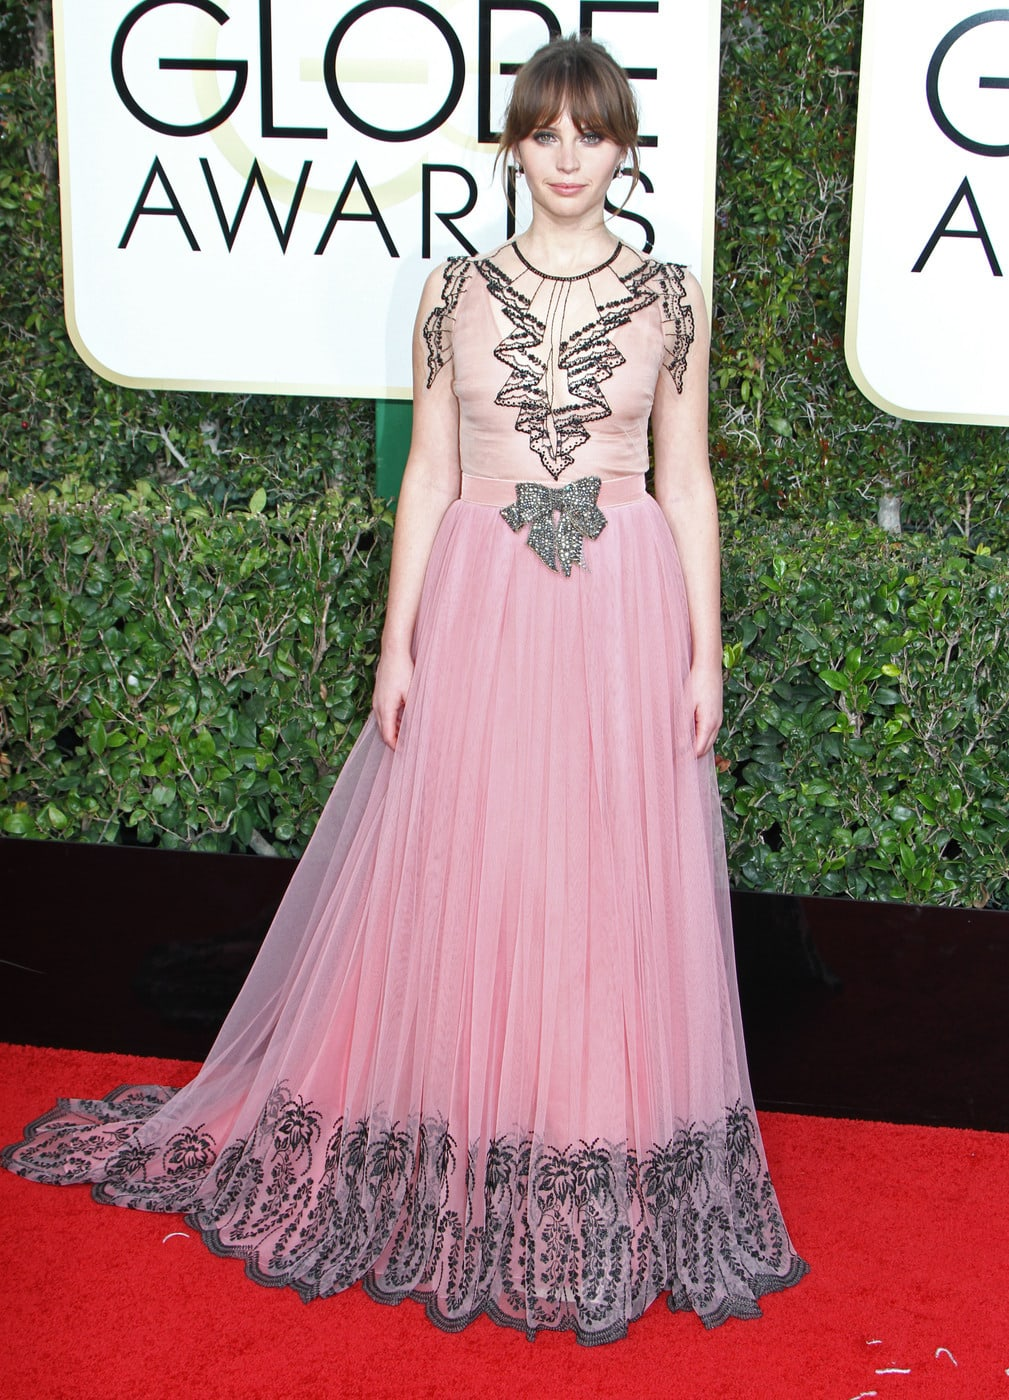 Felicity Jones in a pink Gucci gown on the 2017 Golden Globes red carpet